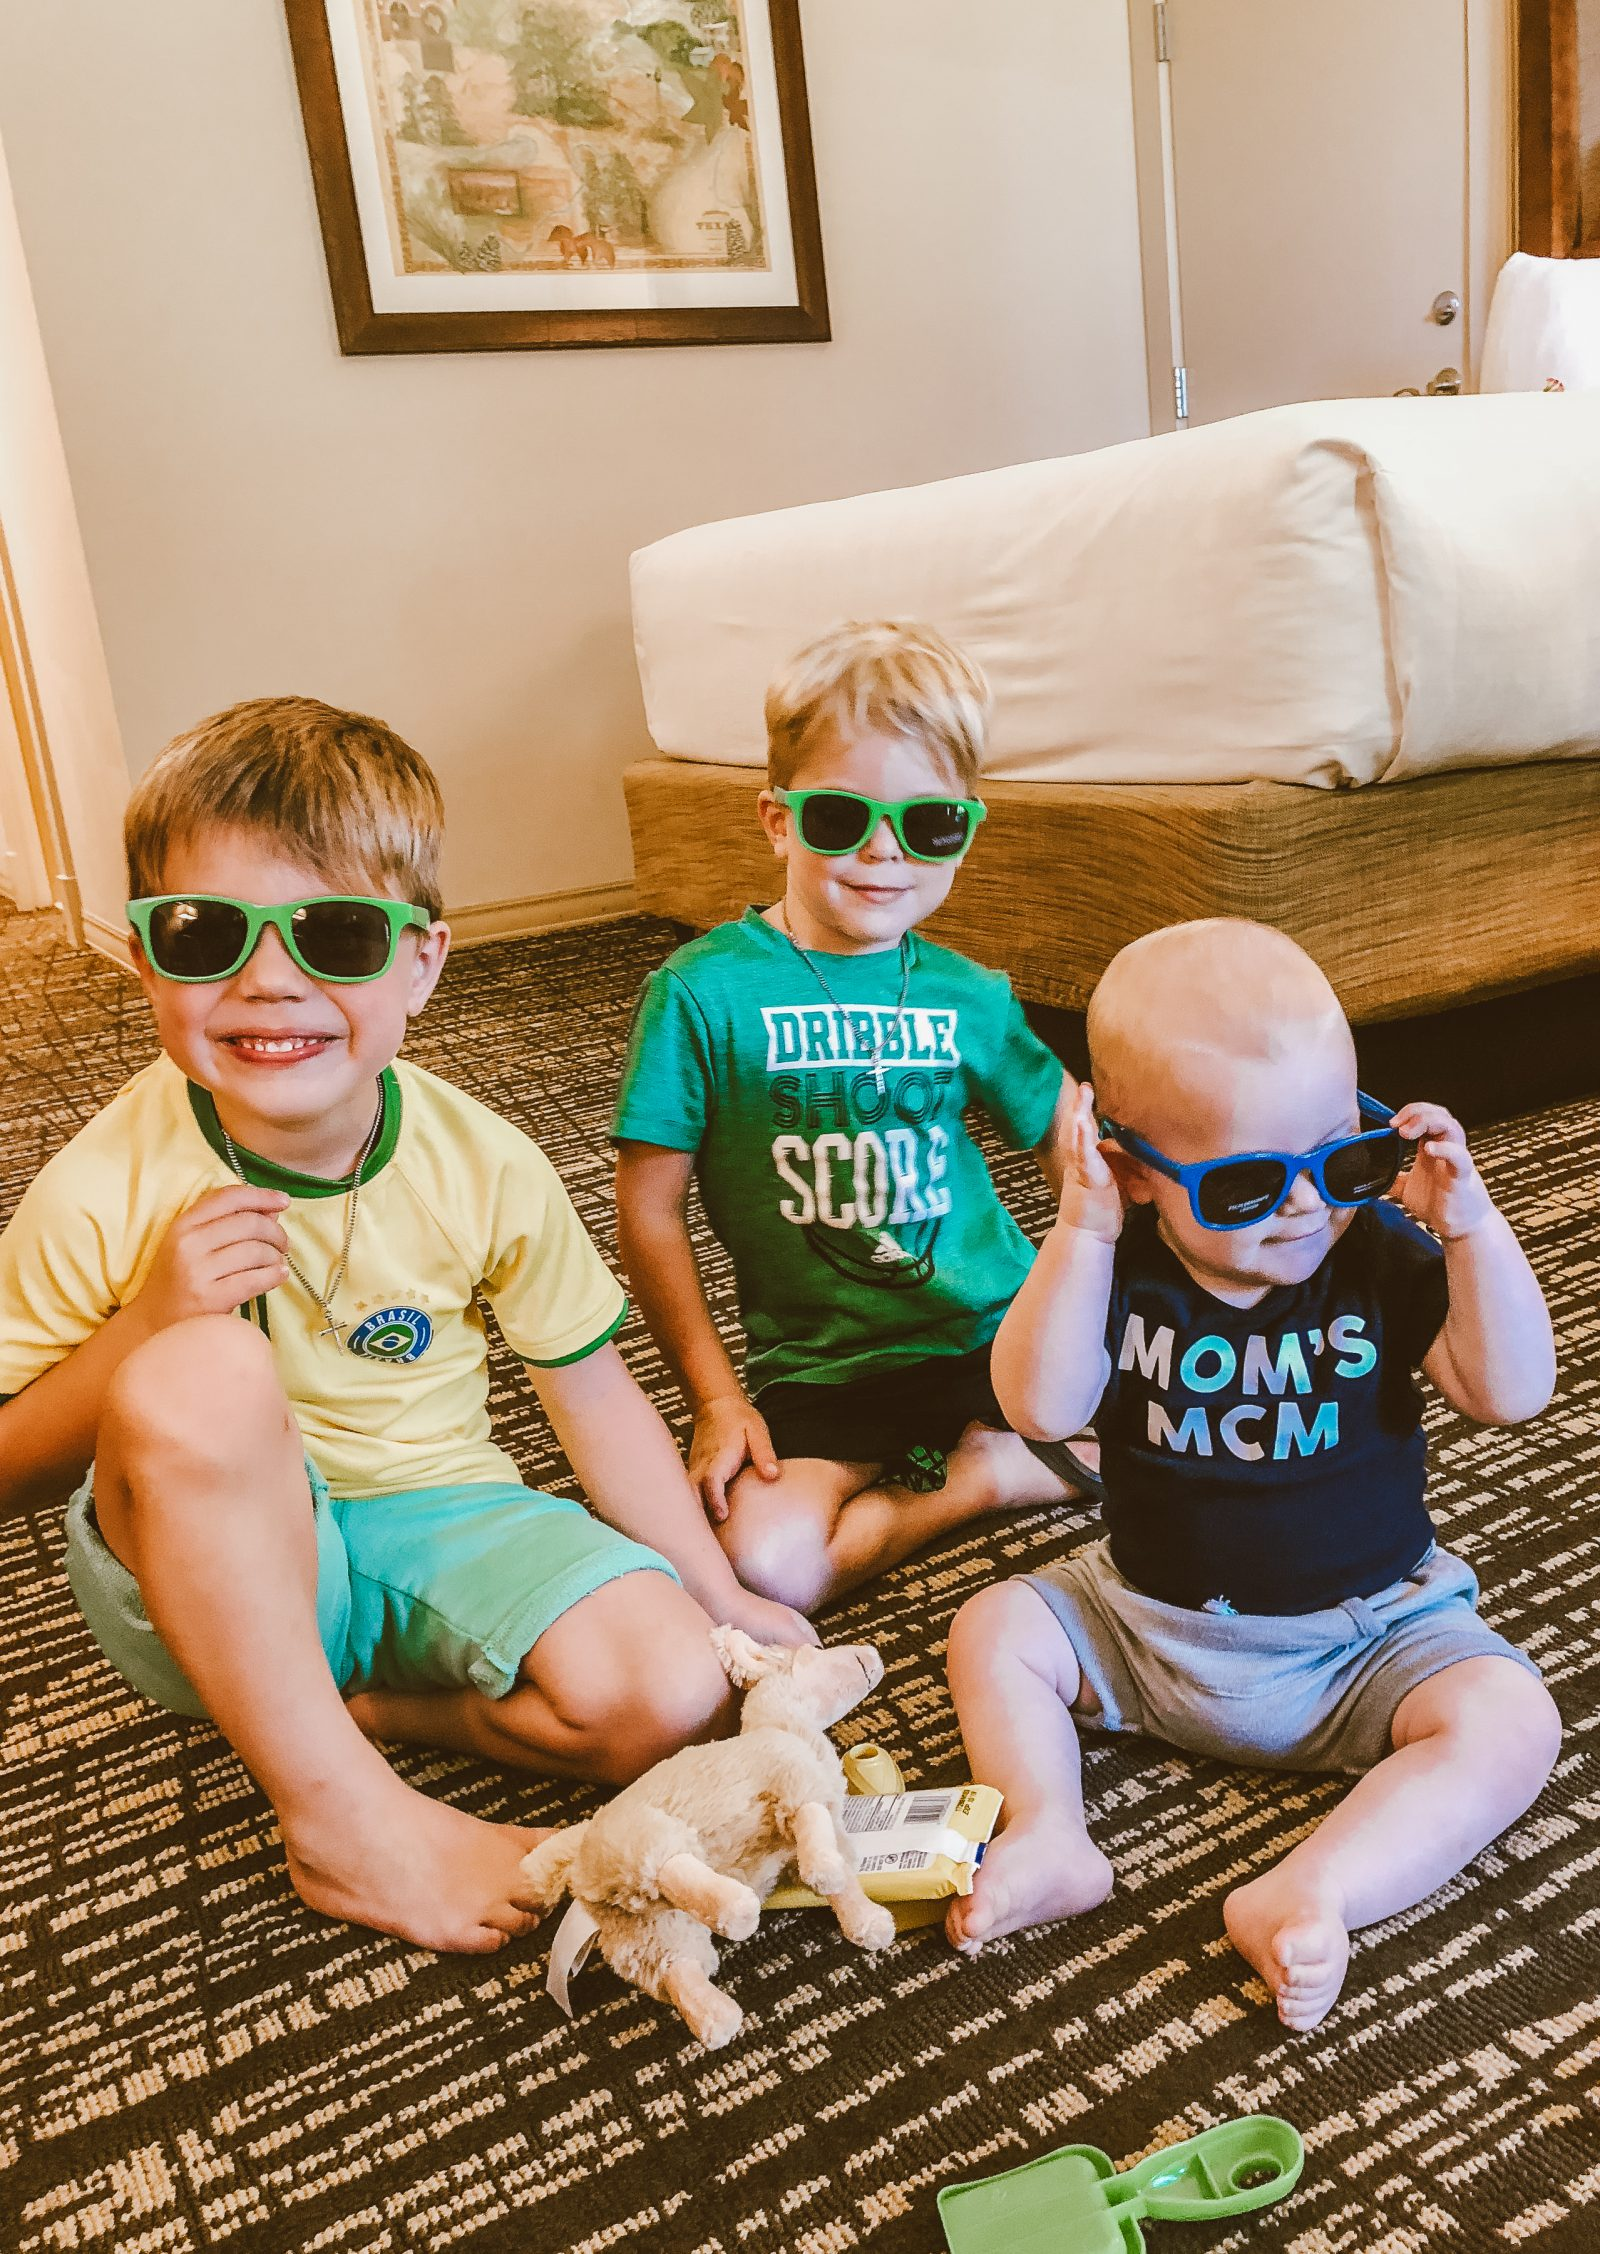 Houston Lifestyle blogger Uptown with Elly Brown shares all about her family vacation to Hyatt Regency Lost Pines Resort and Spa. Click here for more!